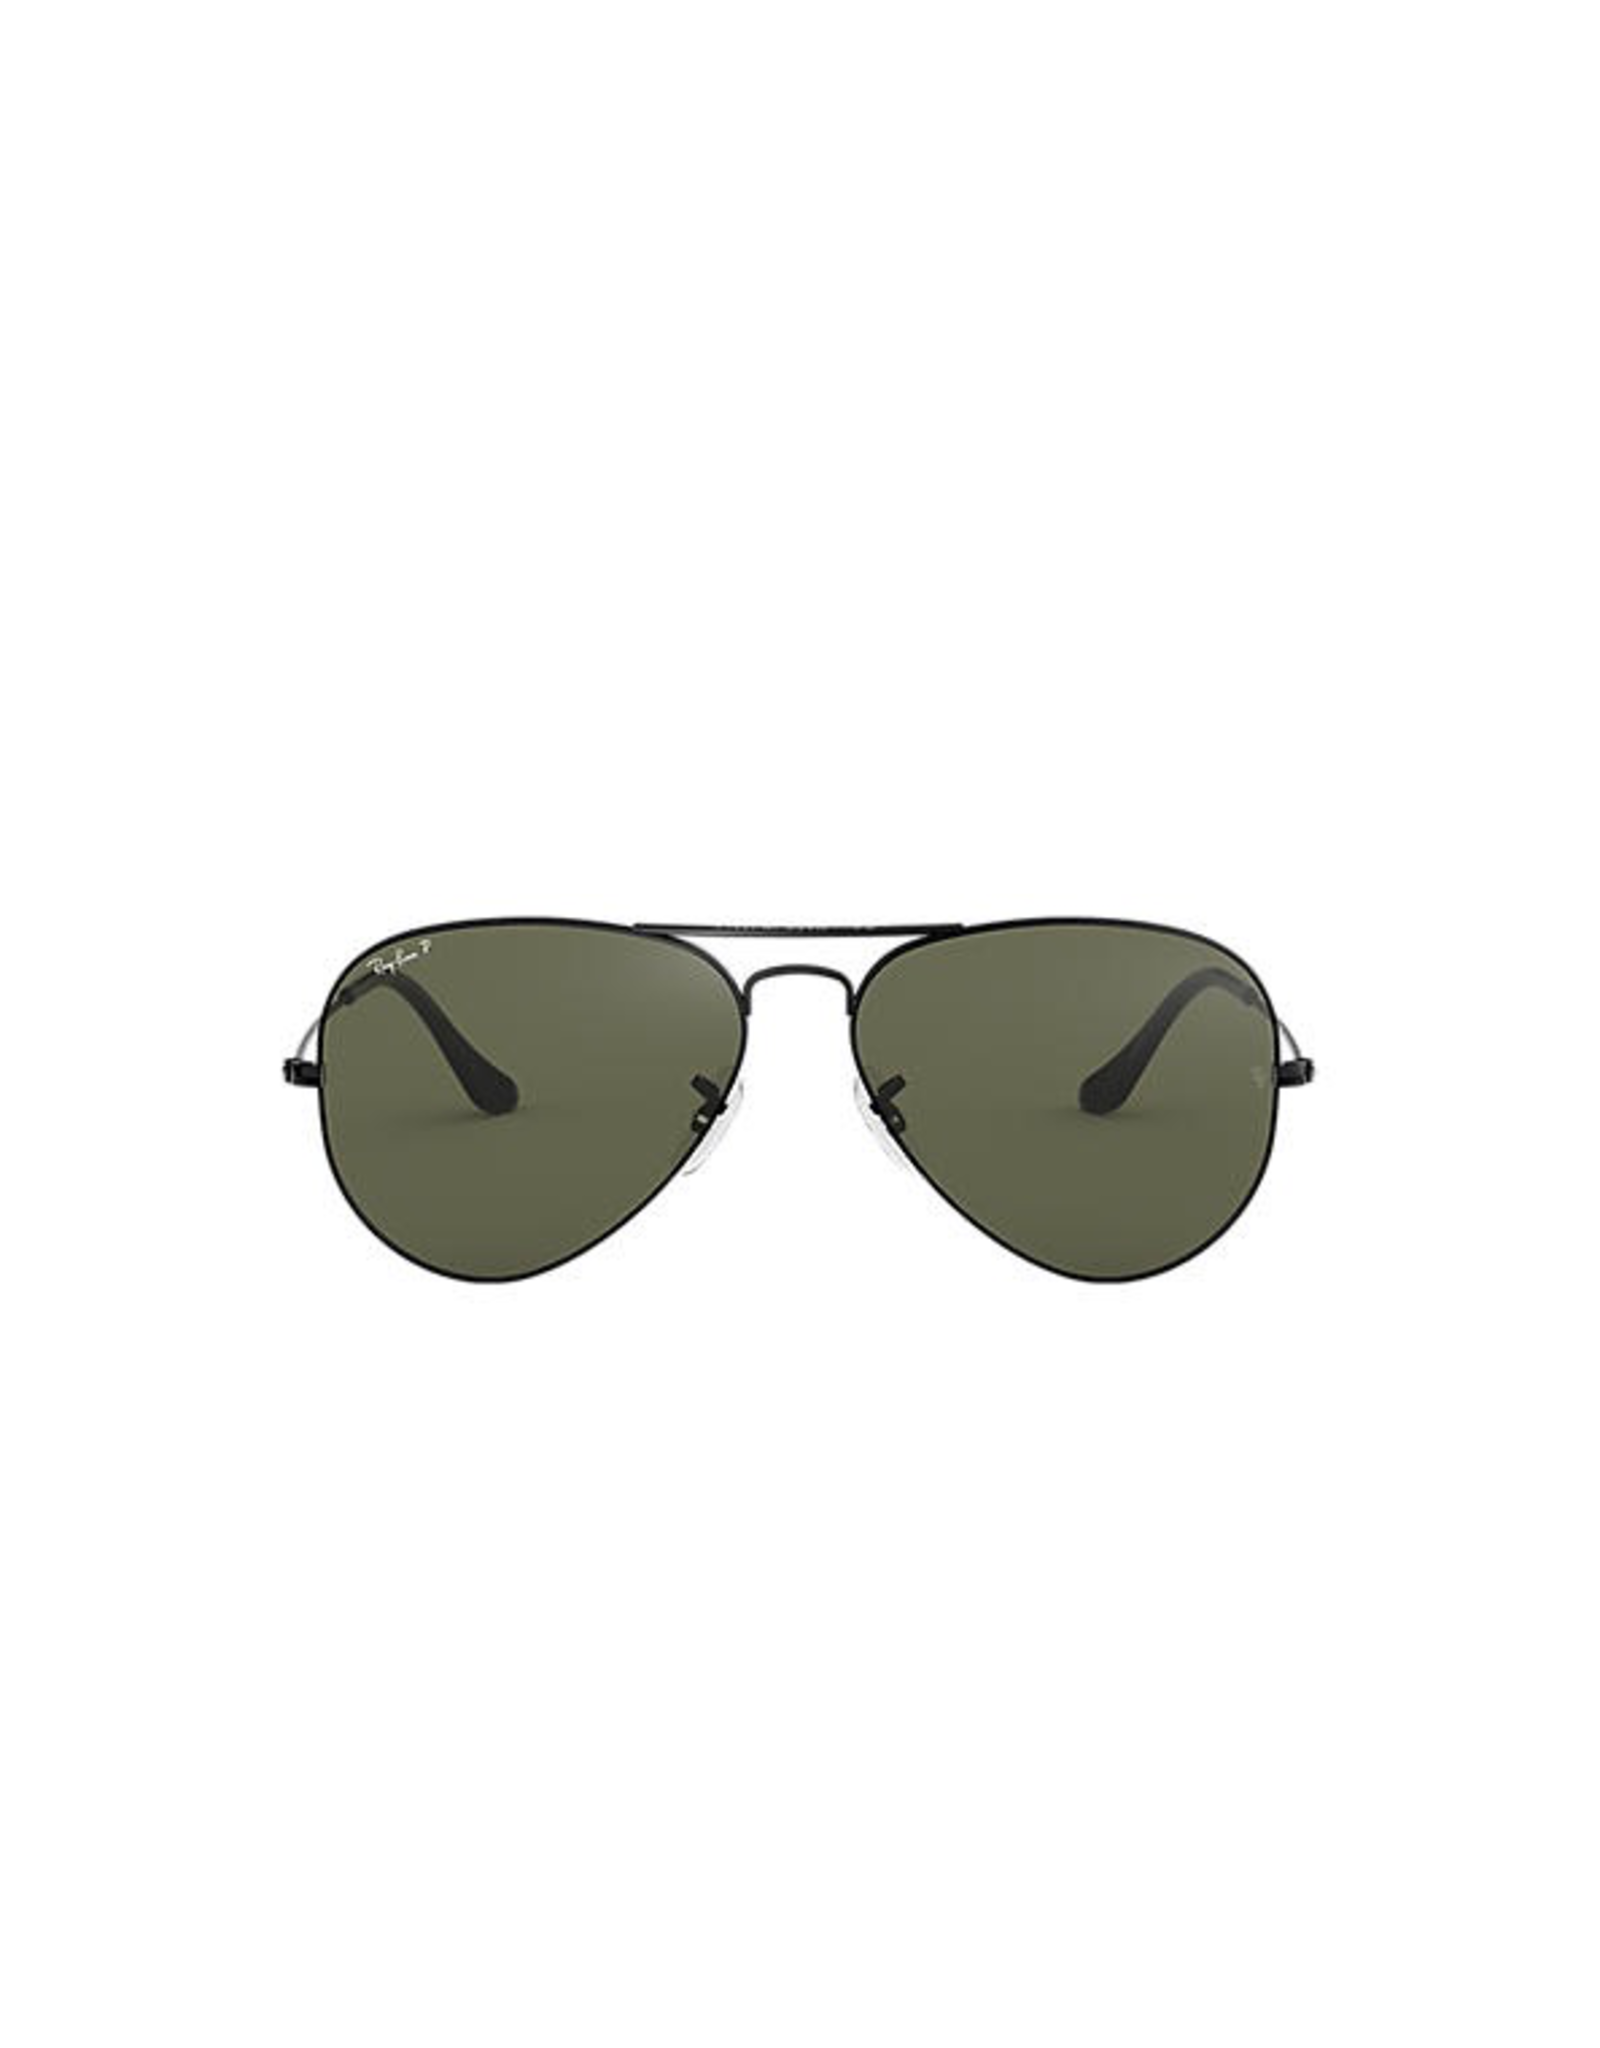 RAYBAN AVIATOR CLASSIC - METAL BLACK WITH CRYSTAL GREEN POLARIZED LENS